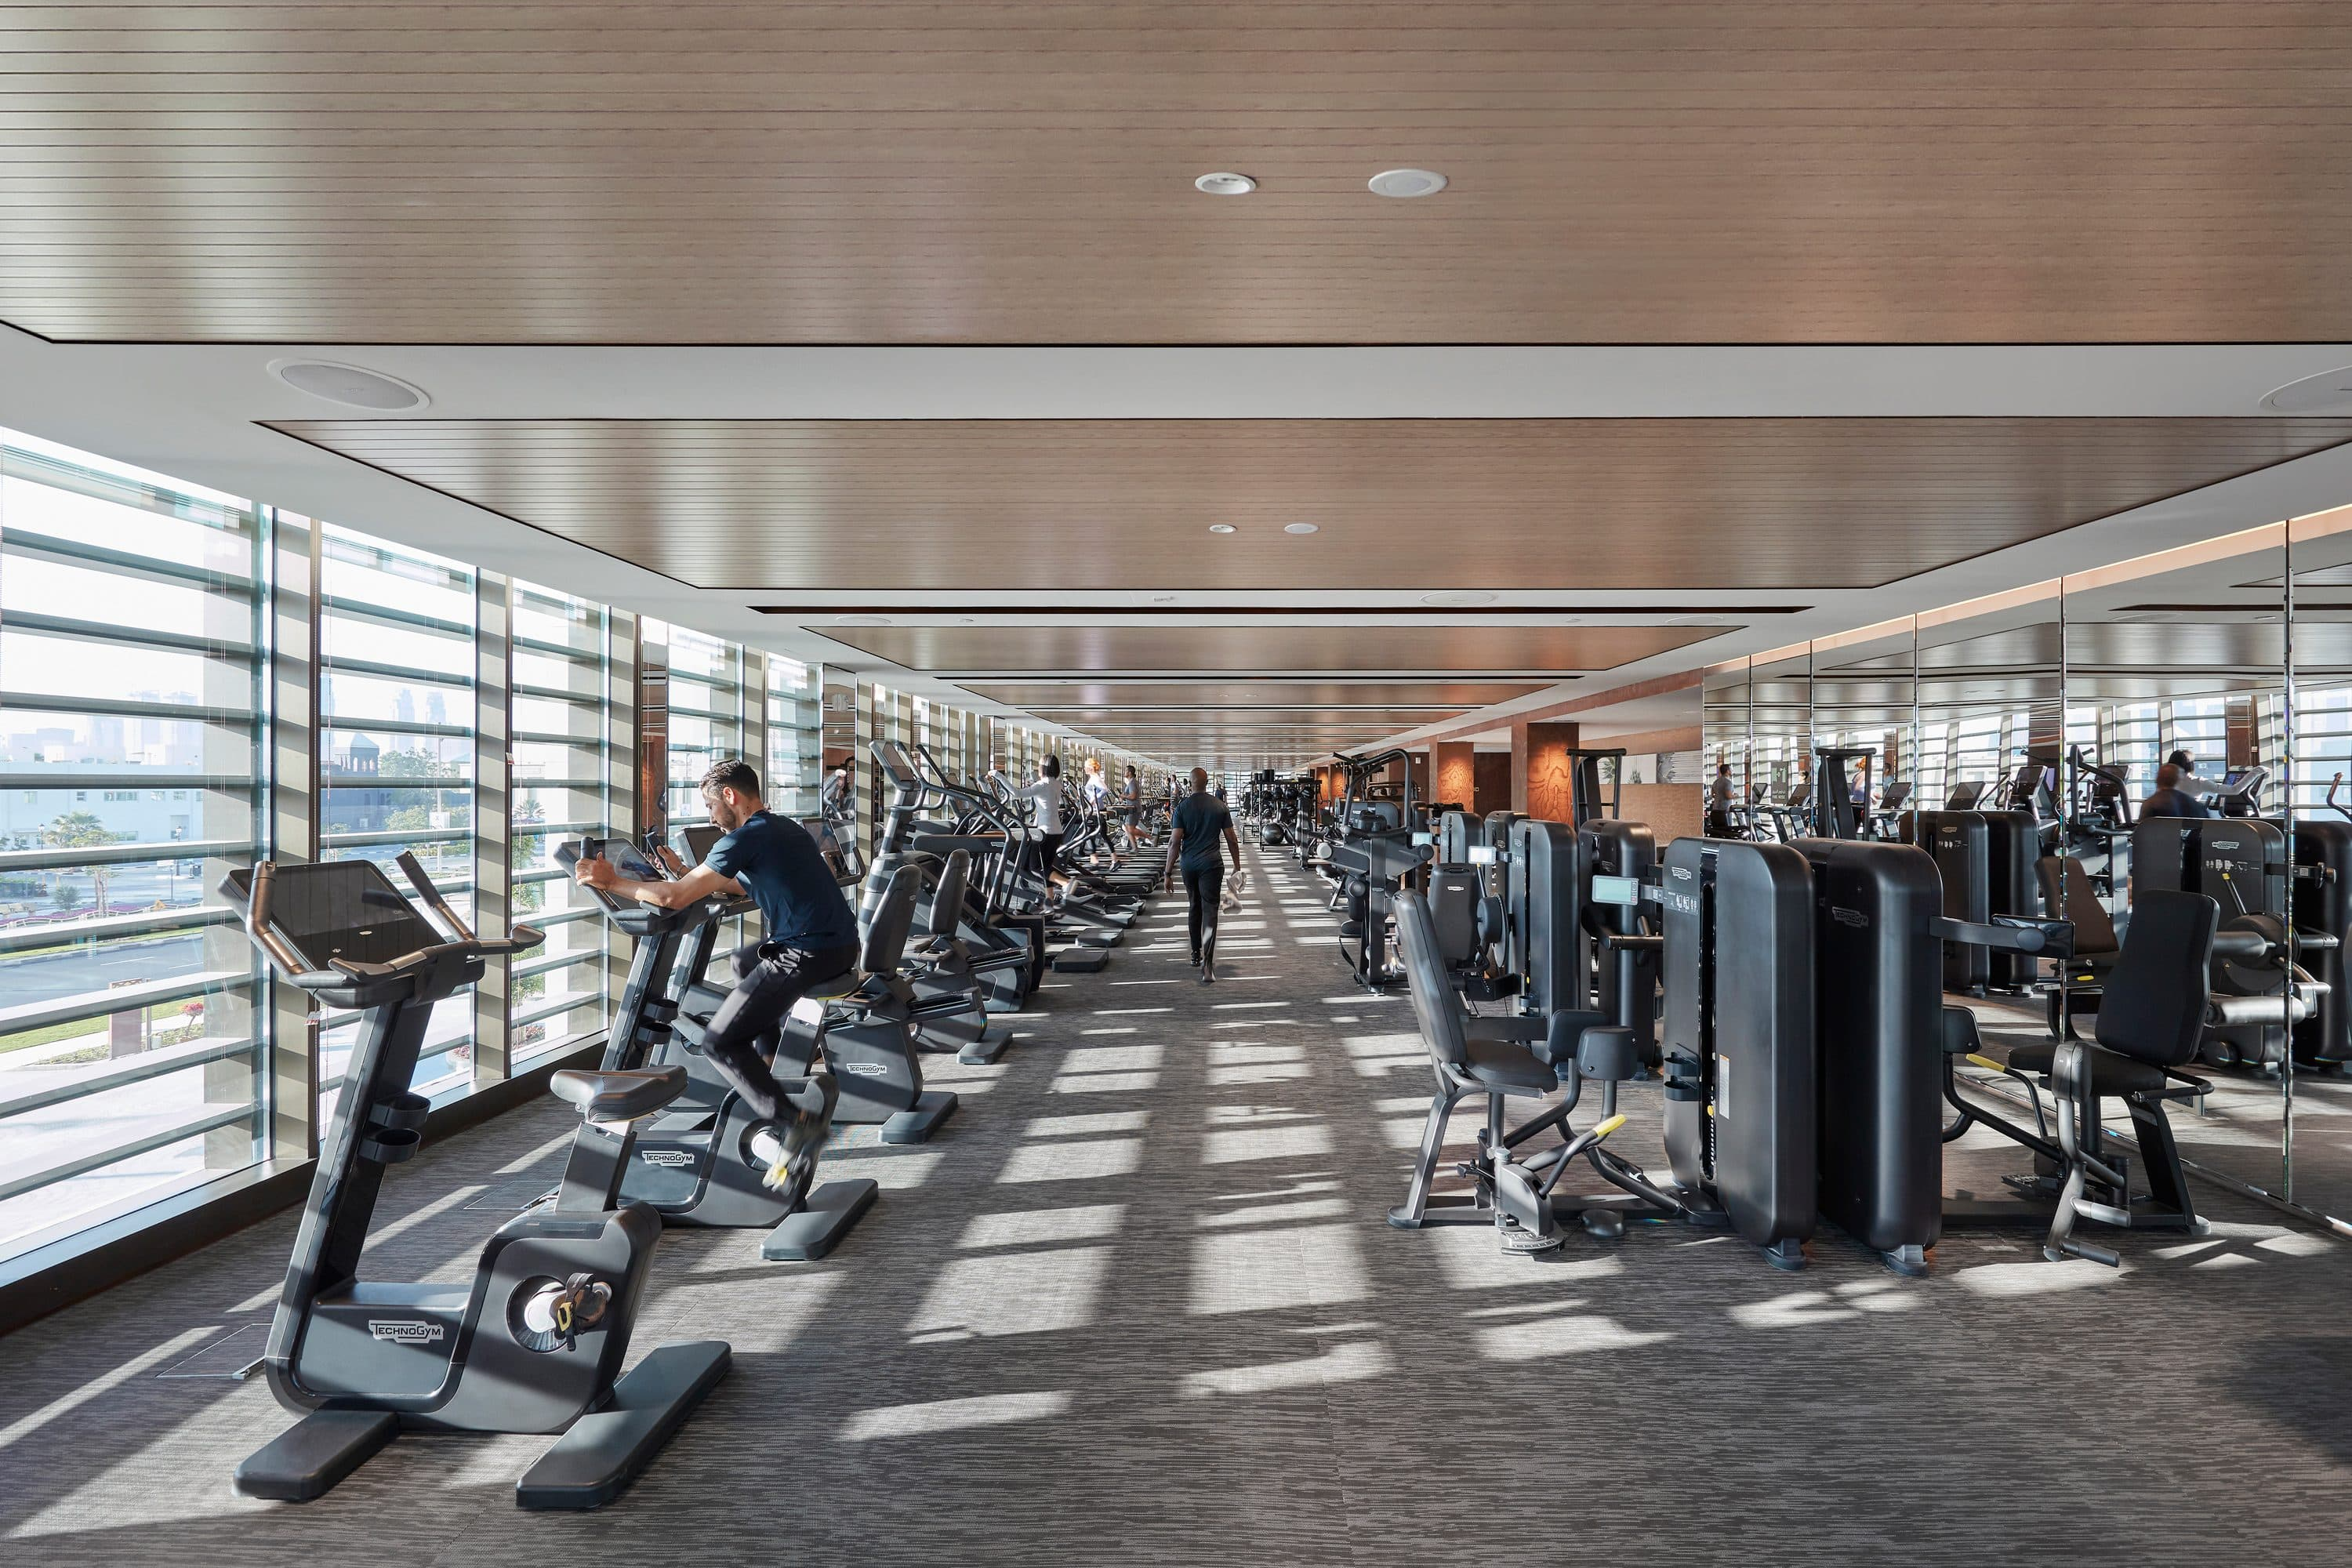 People workout on fitness machines in gym